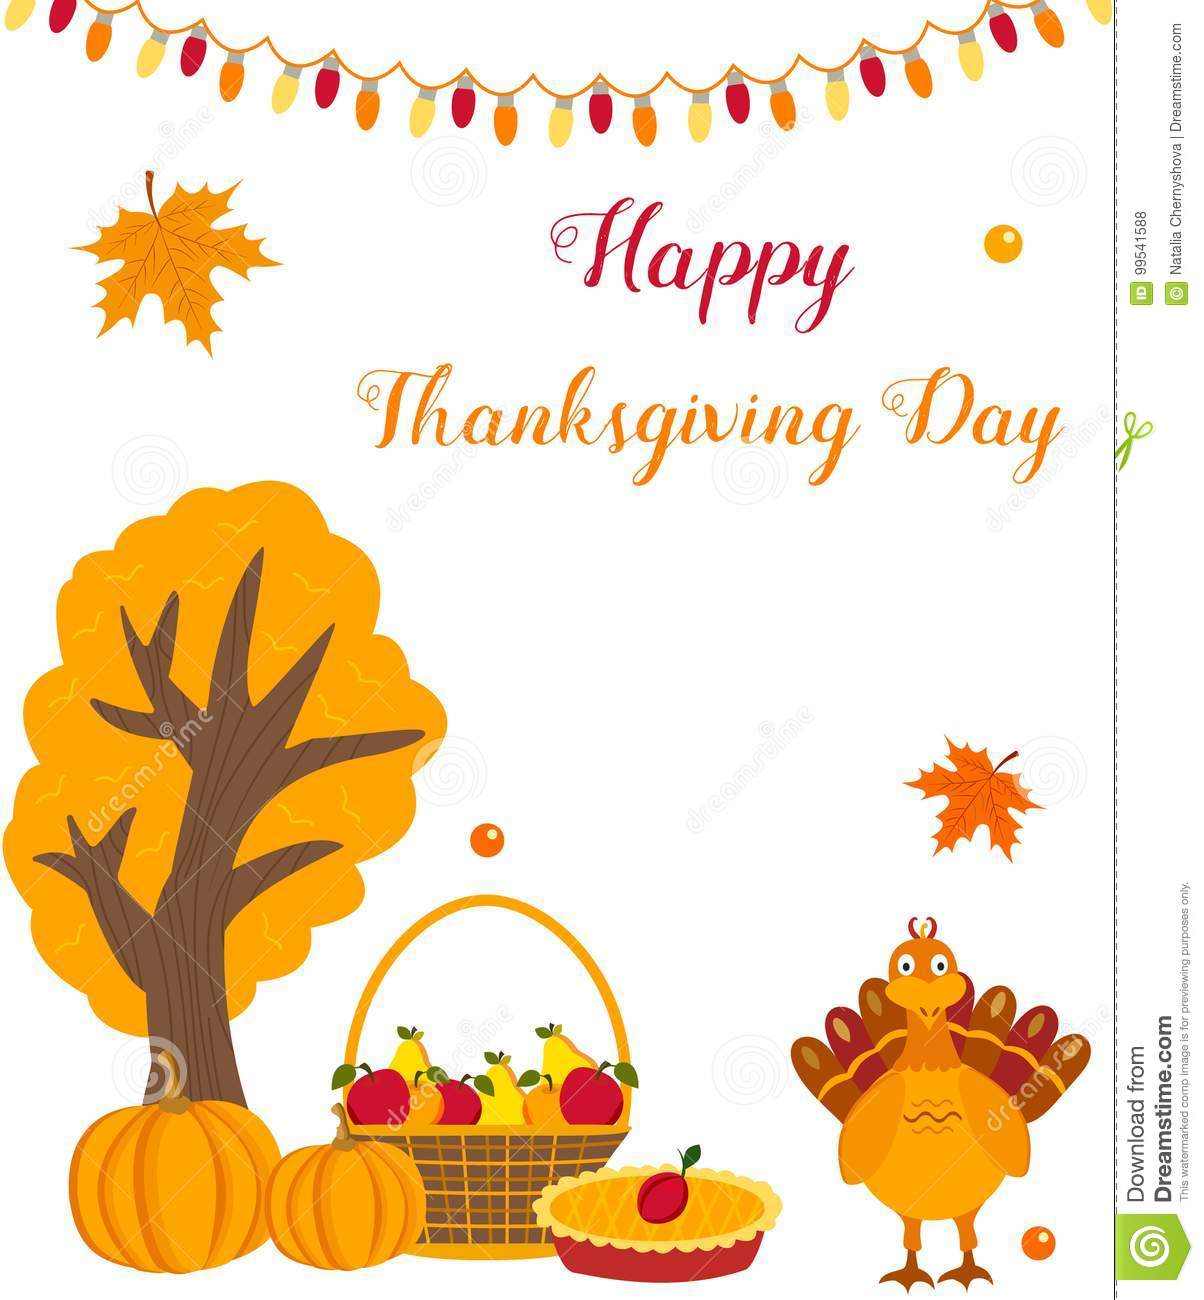 Thanksgiving Background With Funny Turkey Pumpkins And Fruits Stock